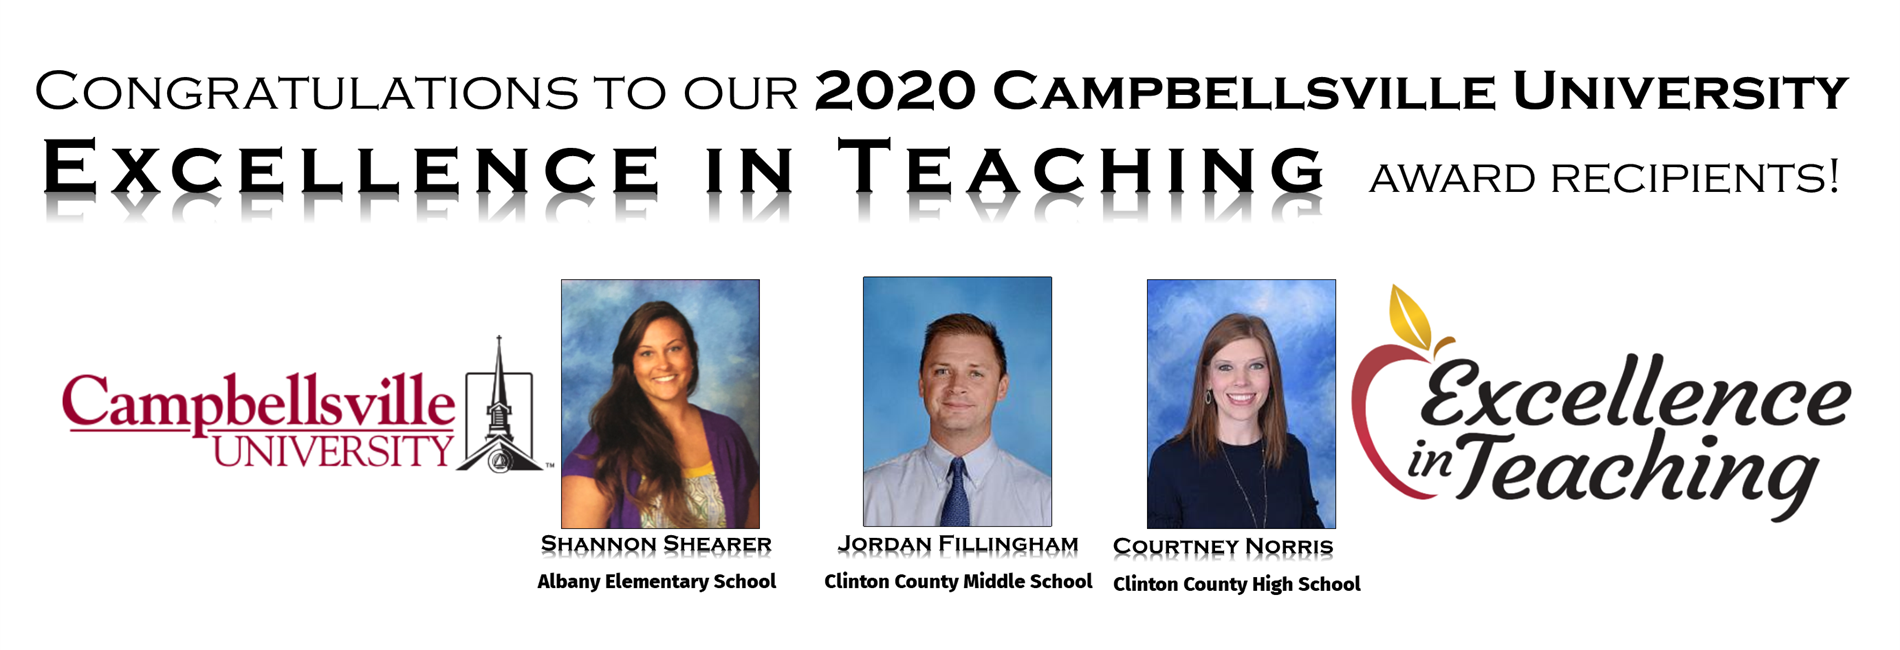 Excellence in Teaching Recipients 2020